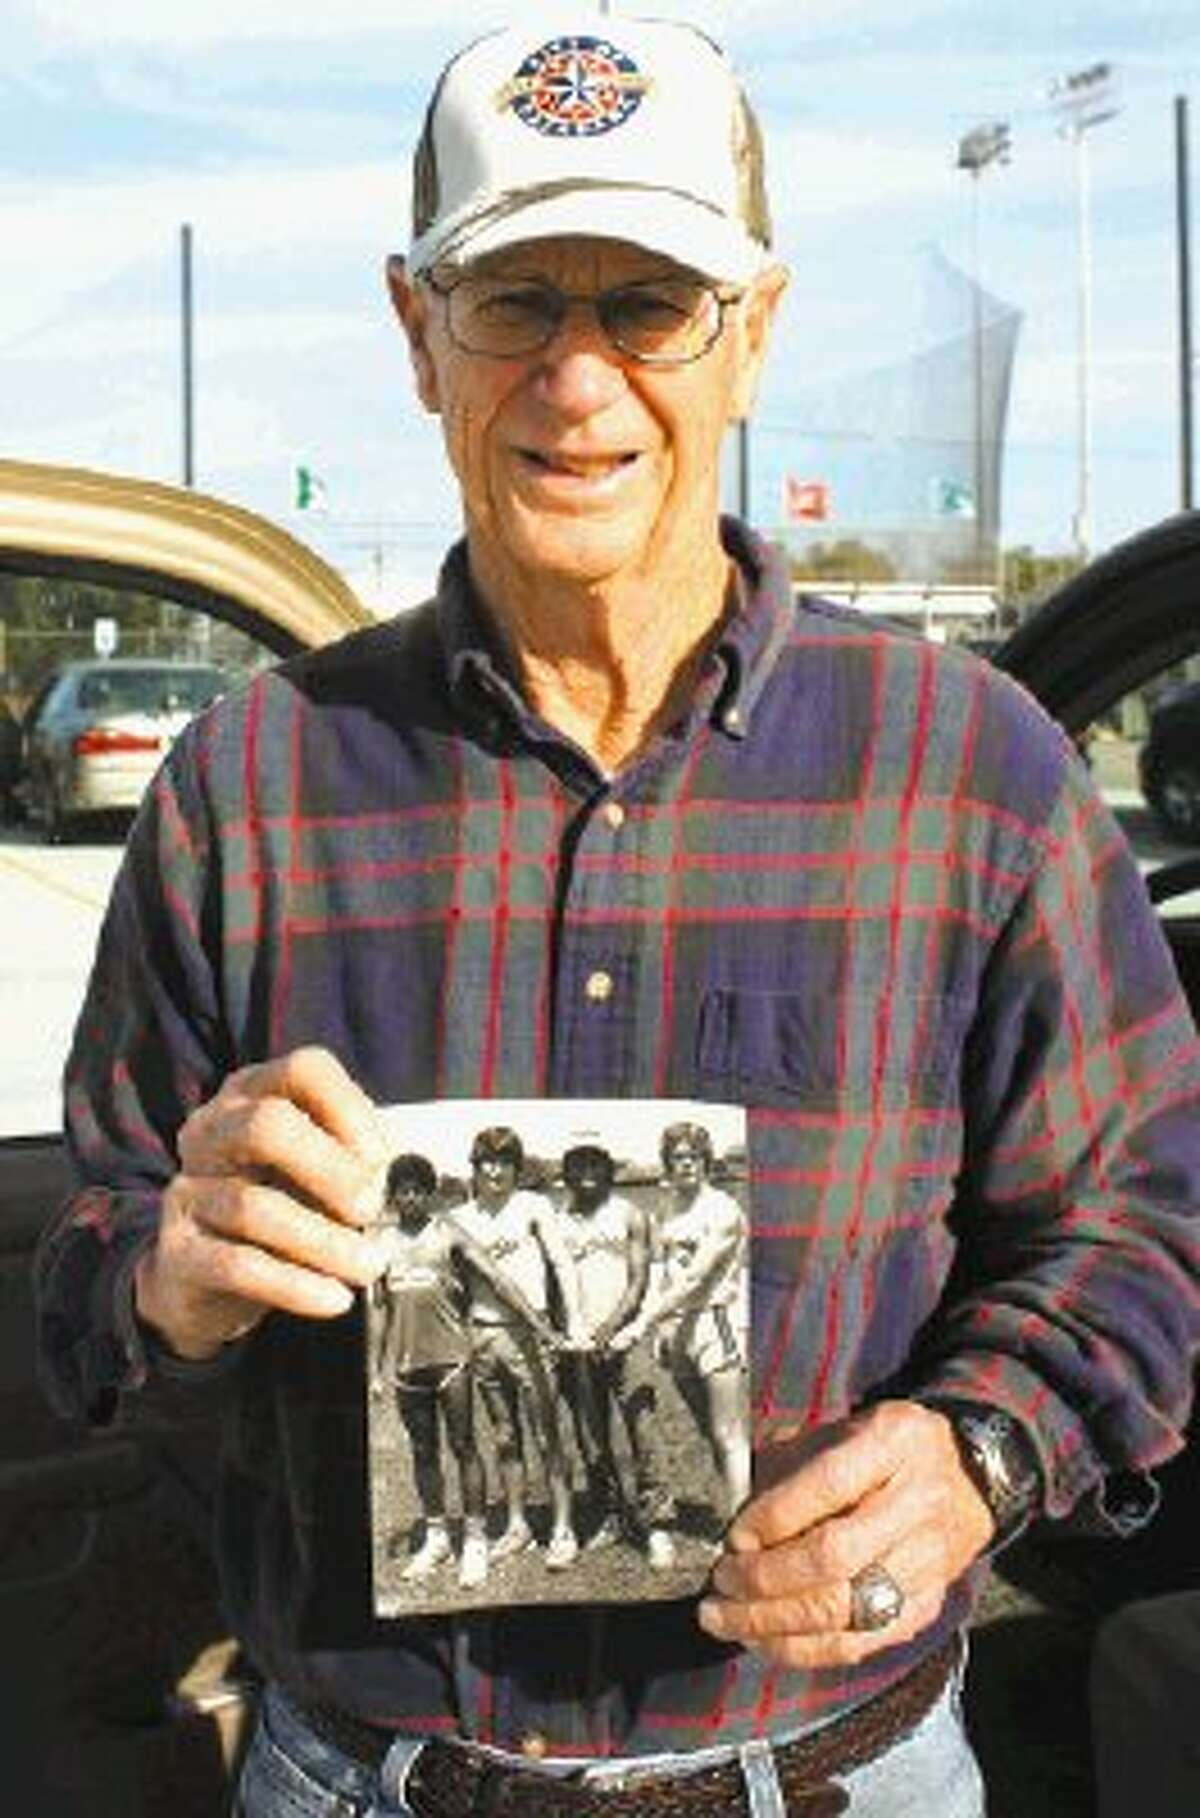 John Bryan holds the picture to one of his Dobie relay teams that gave the soon-to-be PISD Sports Hall of Fame inductee one of his many triumphs. Bryan, who coached track and field at Queens, Pasadena and Dobie, guiding the Longhorns to two 5A state titles during the 1980-81 school year, will be inducted April 13 along with seven others.